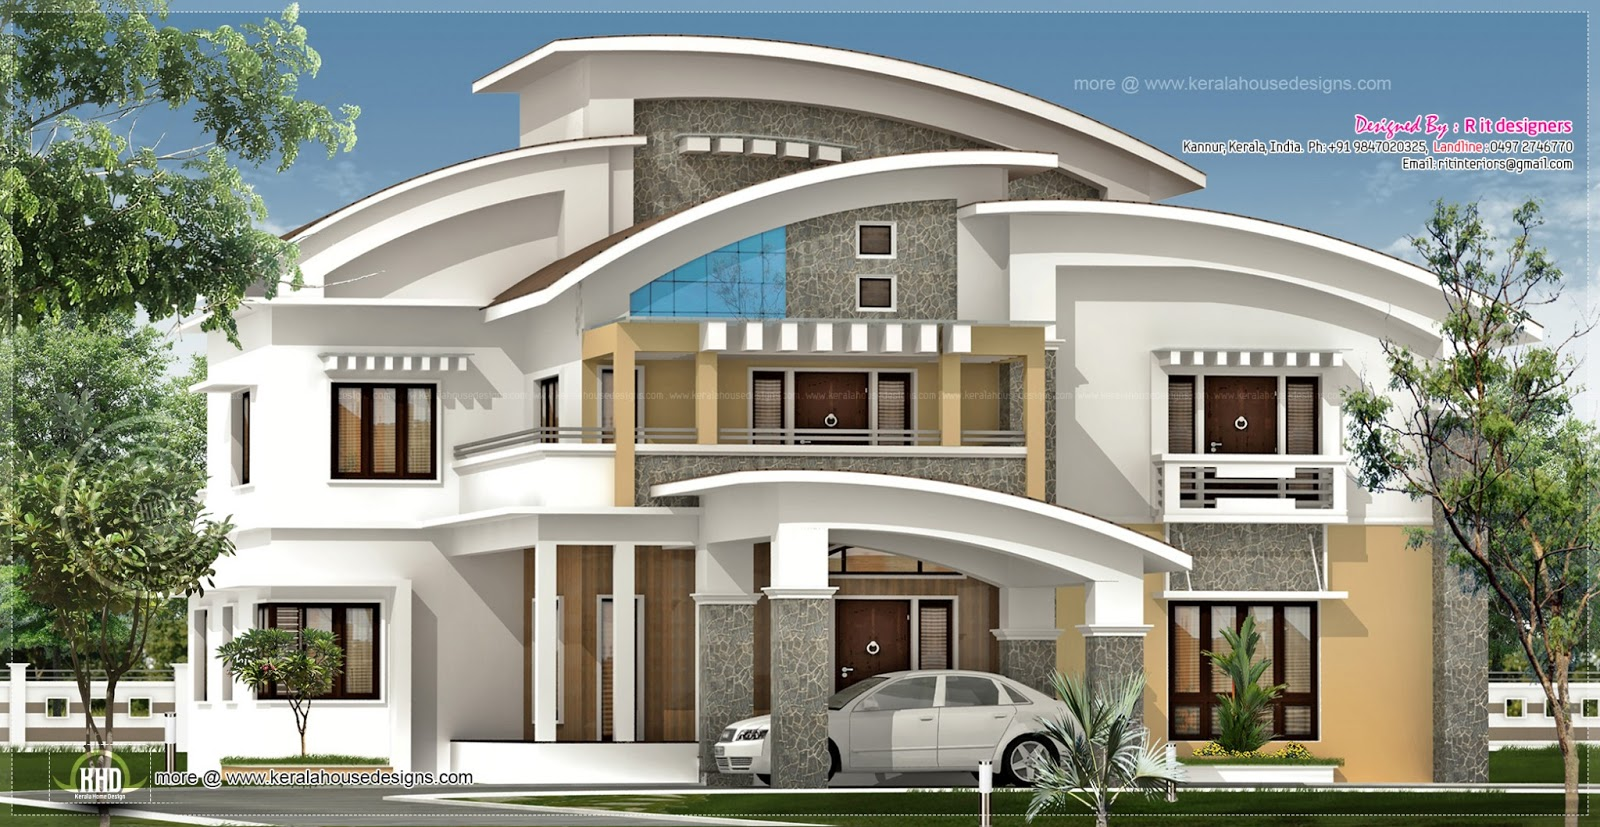 3750 square feet luxury villa exterior house design plans On luxury house plans designs